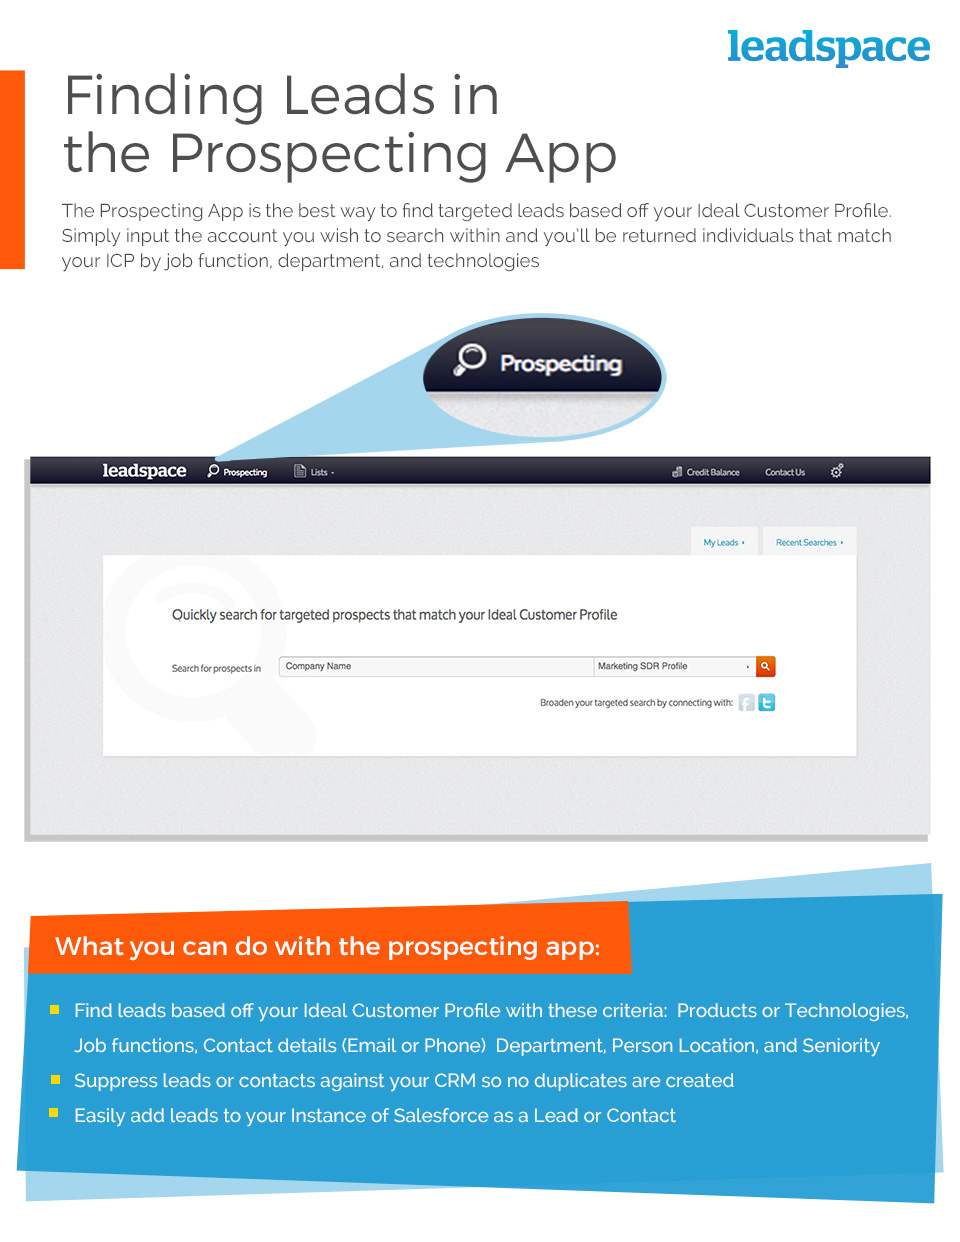 Leadspace_Prospecting_App_Draft_Cover